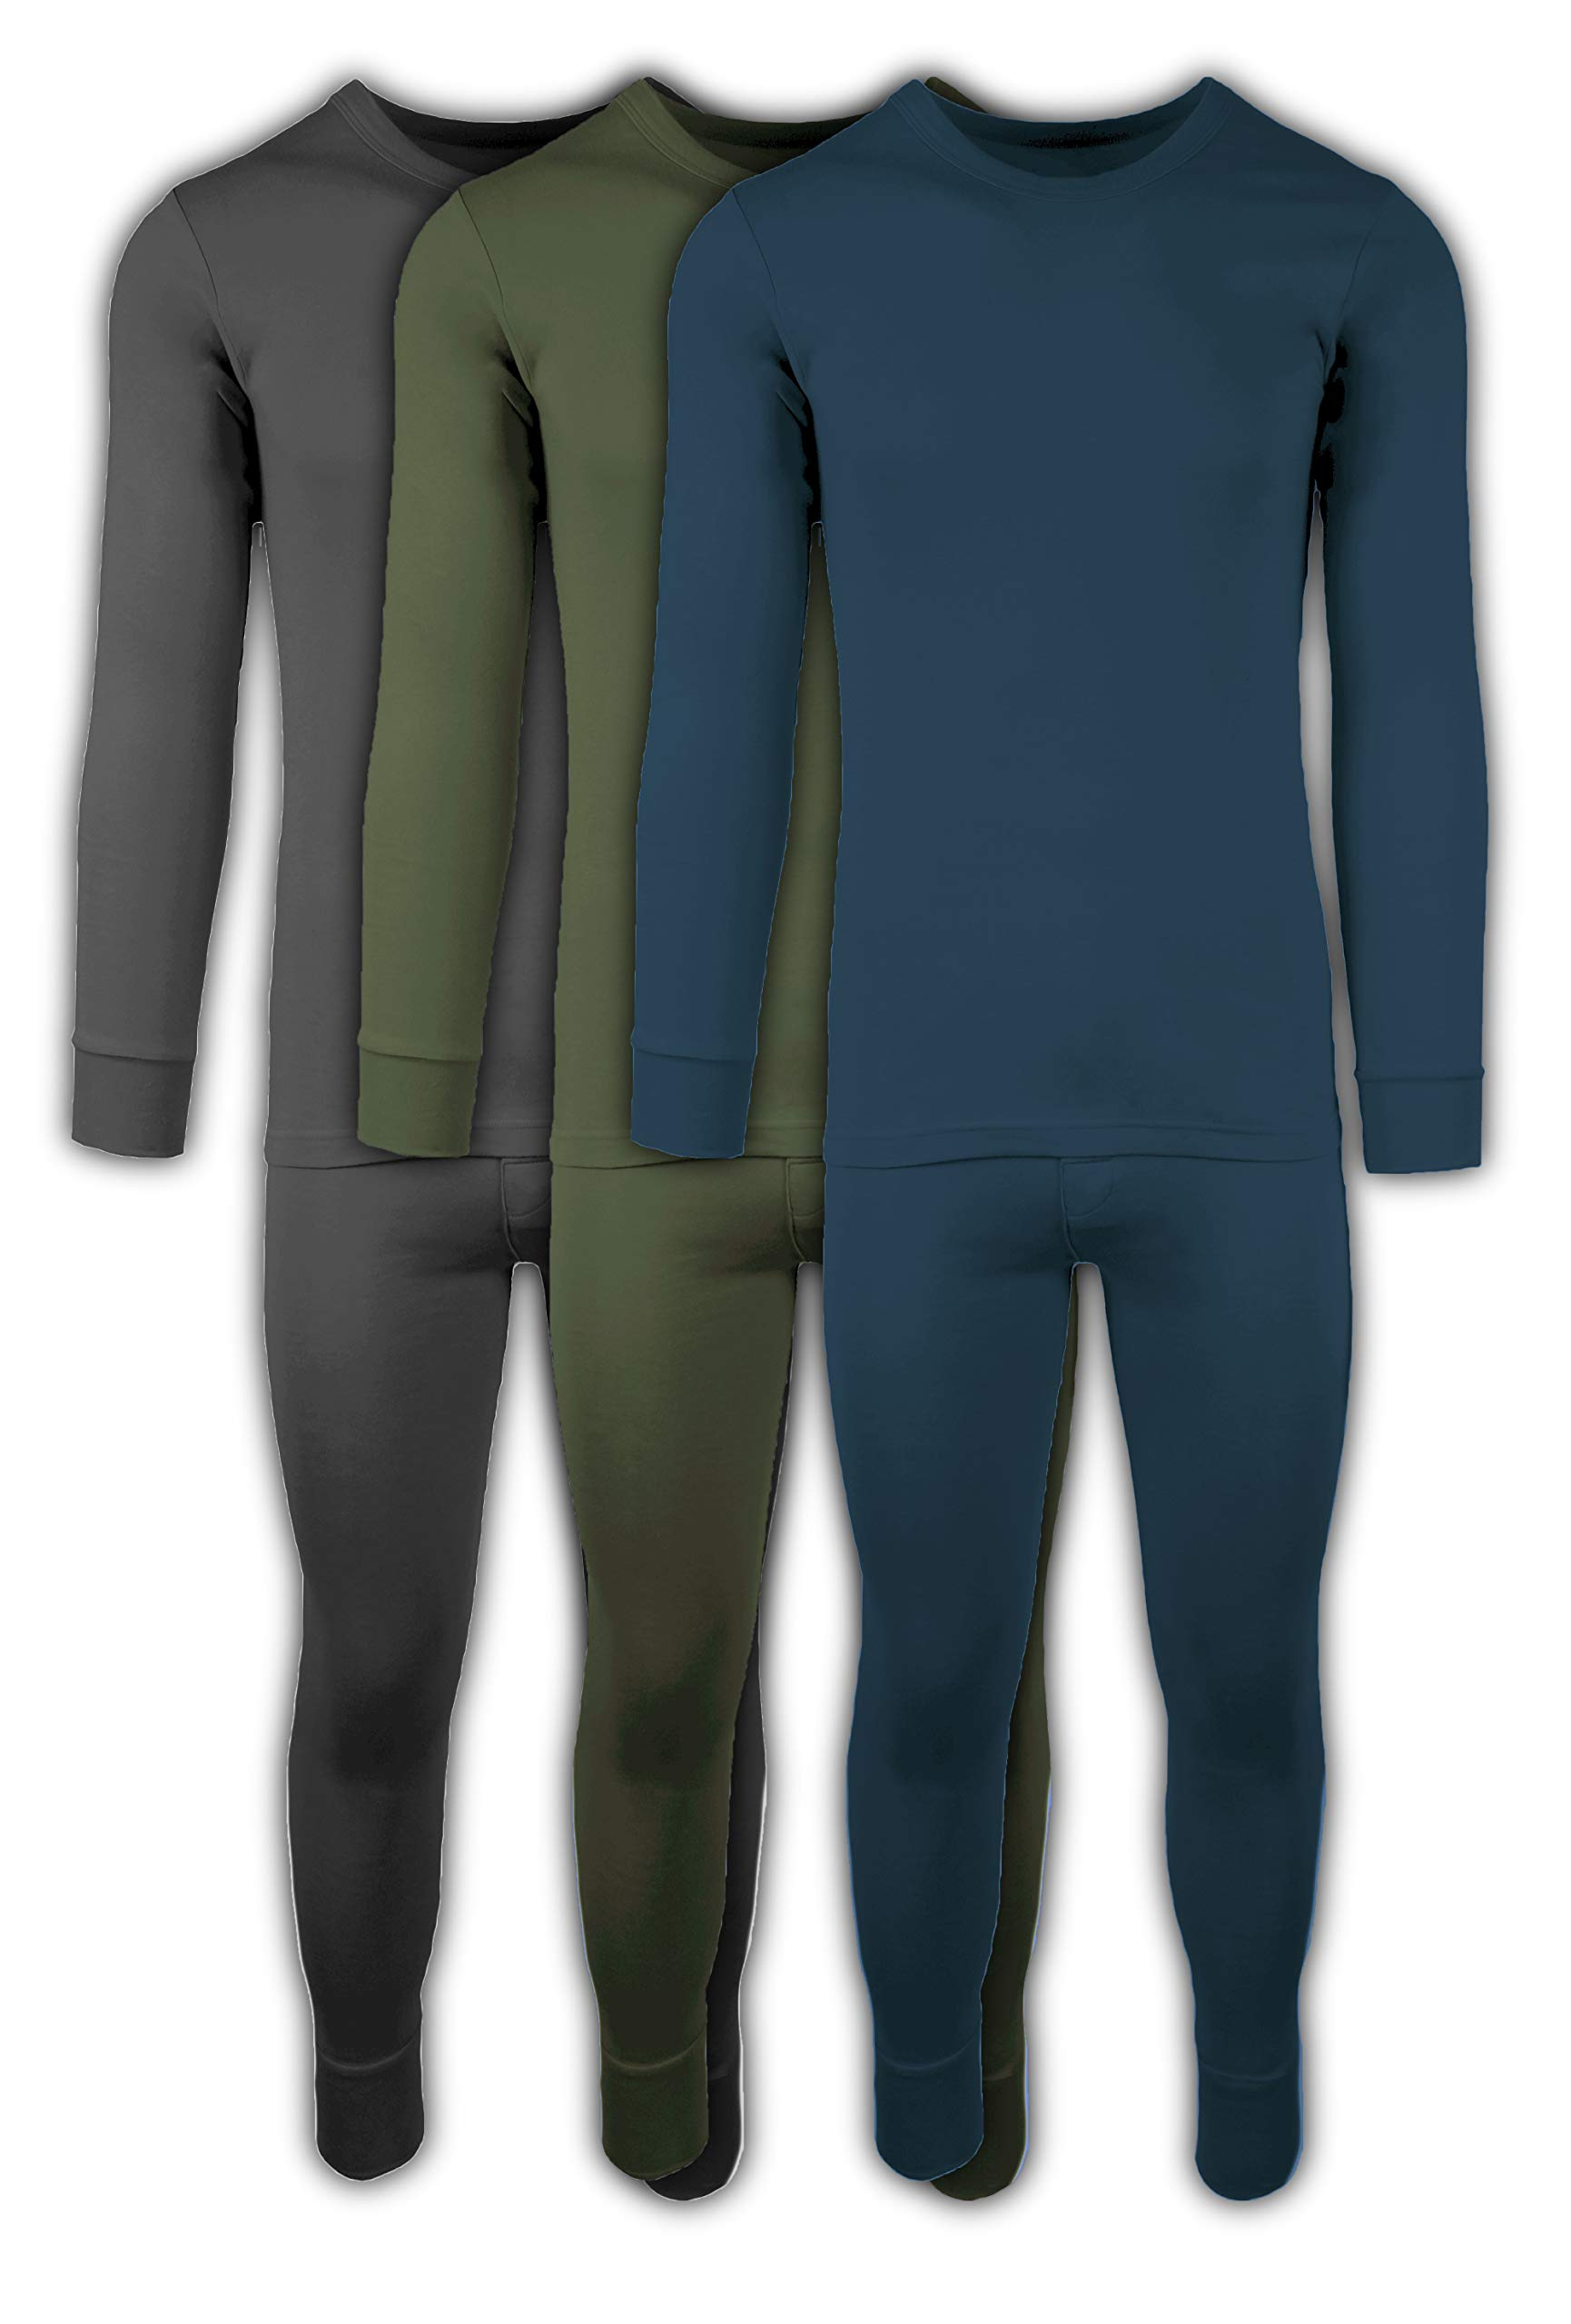 Andrew Scott Mens 2 Piece & 6 Piece Base Layer Long Sleeve + Long Pant Thermal Underwear Set (1 & 3 Pack Mix Match Options) (Large, 3 Sets / 6 Piece -Charcoal/Olive/Legion Blue) by Andrew Scott